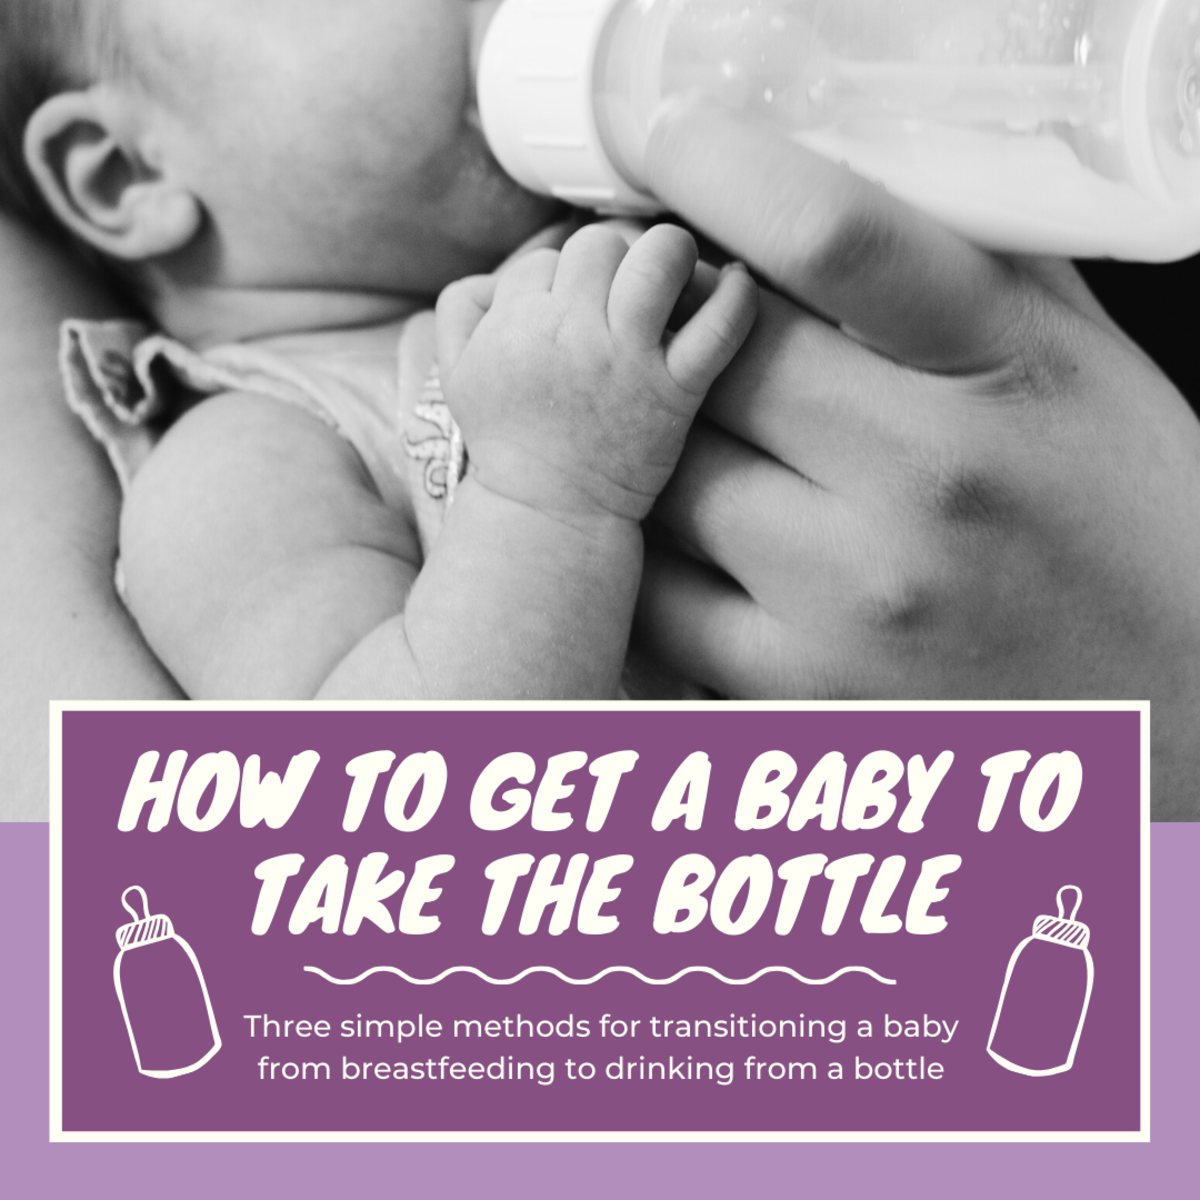 3 Ways to Get a Breastfed Baby That Won't Take a Bottle to Drink